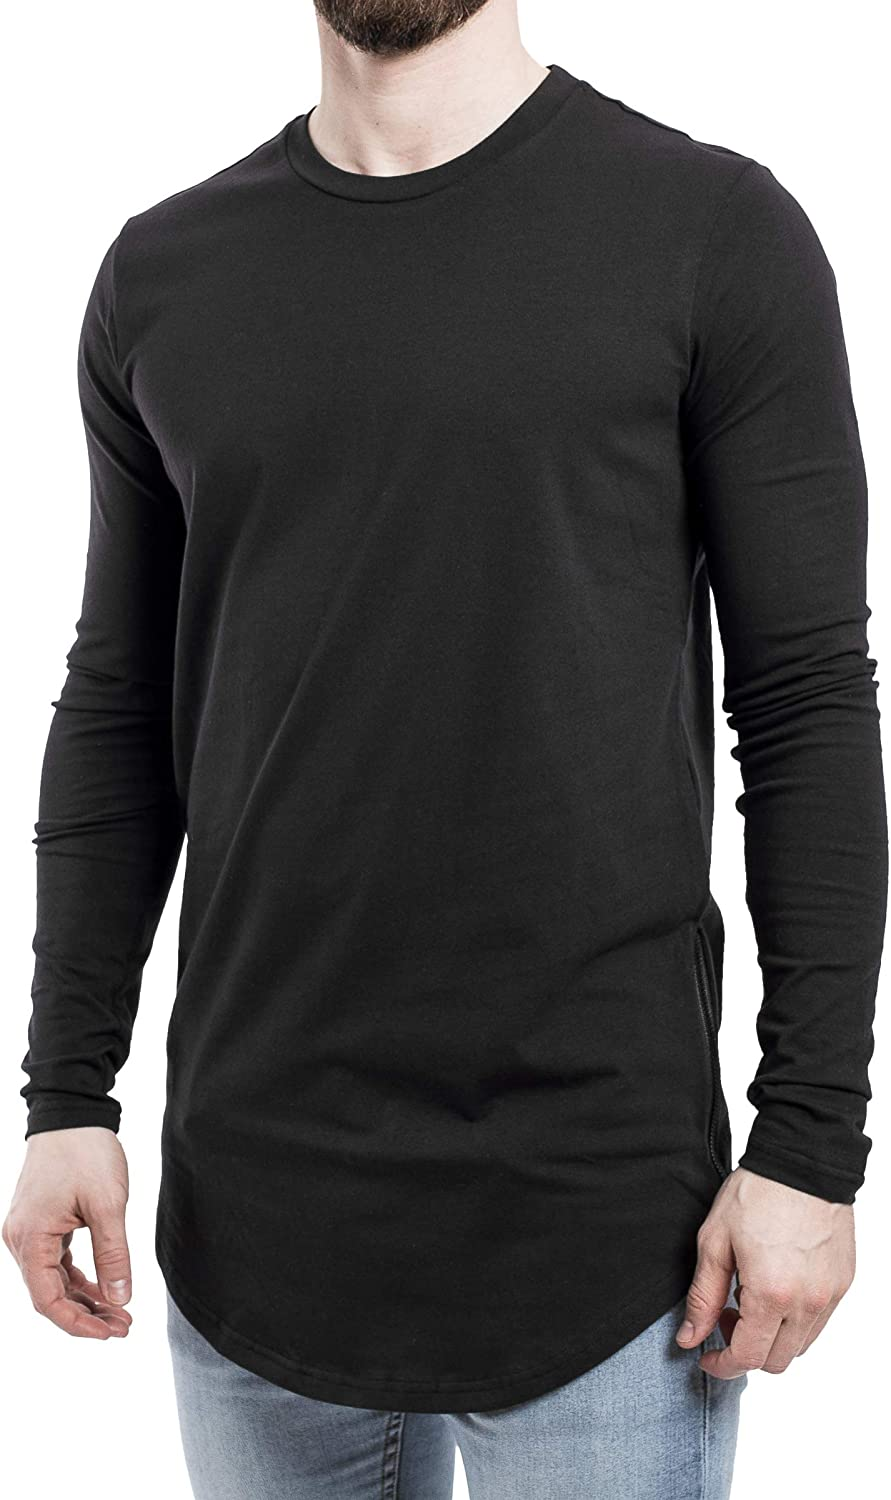 Blackskies Oversized Longline Longsleeve T-Shirt Mens Long-Sleeved Elongated Curved Tee with Side Zipper S M L XL